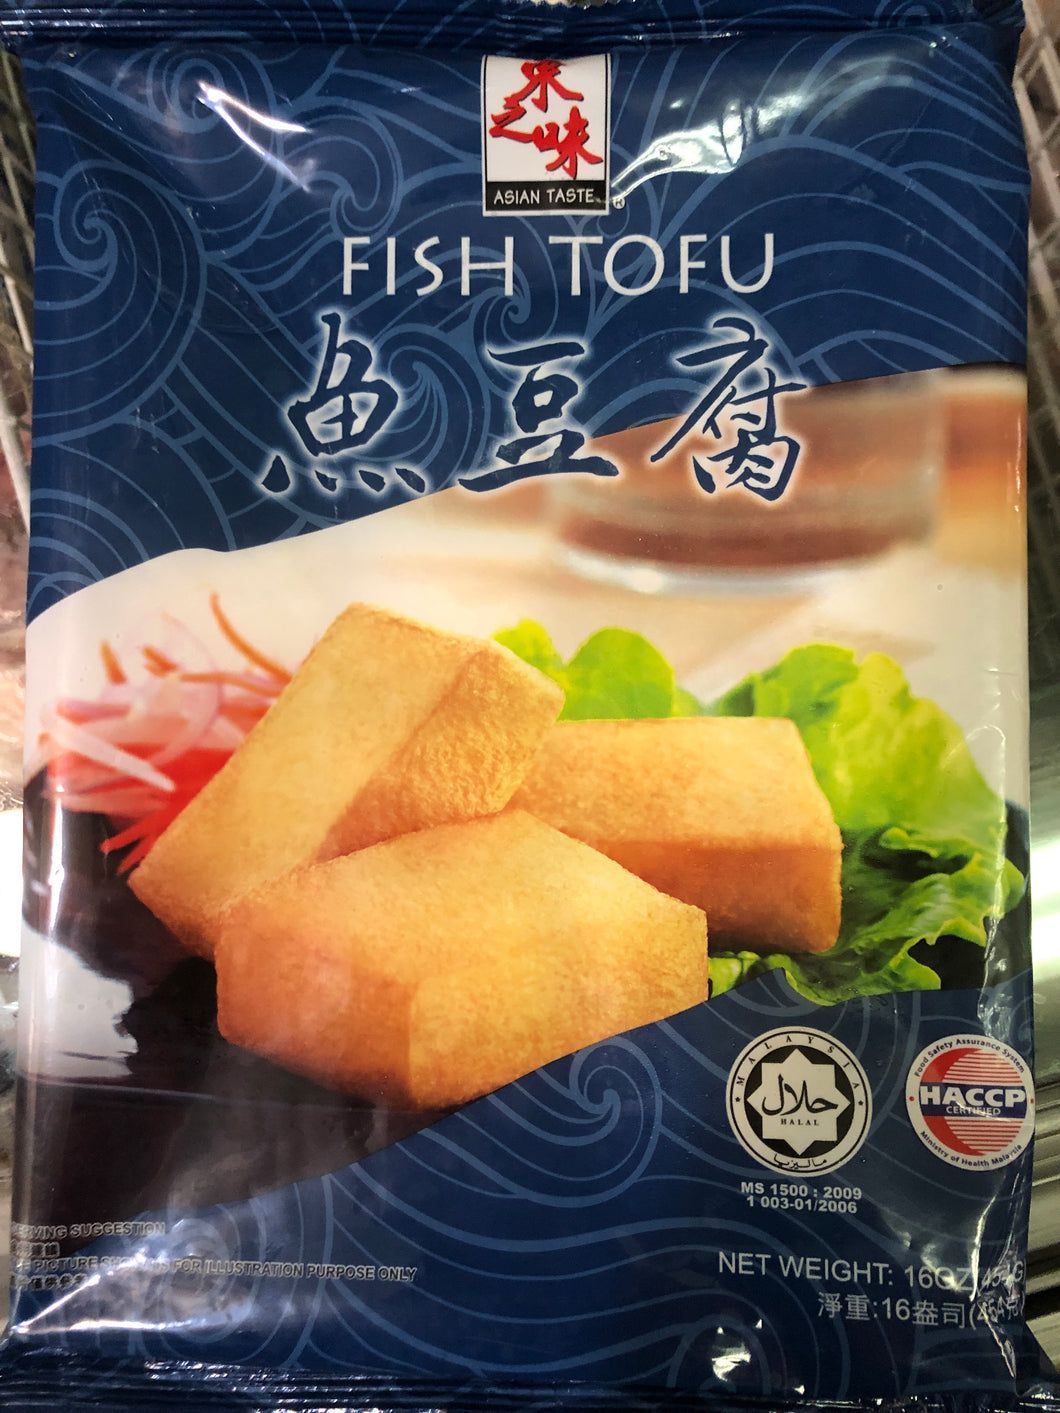 冻鱼豆腐 FROZEN ASIAN TASTE FISH TOFU 16OZ